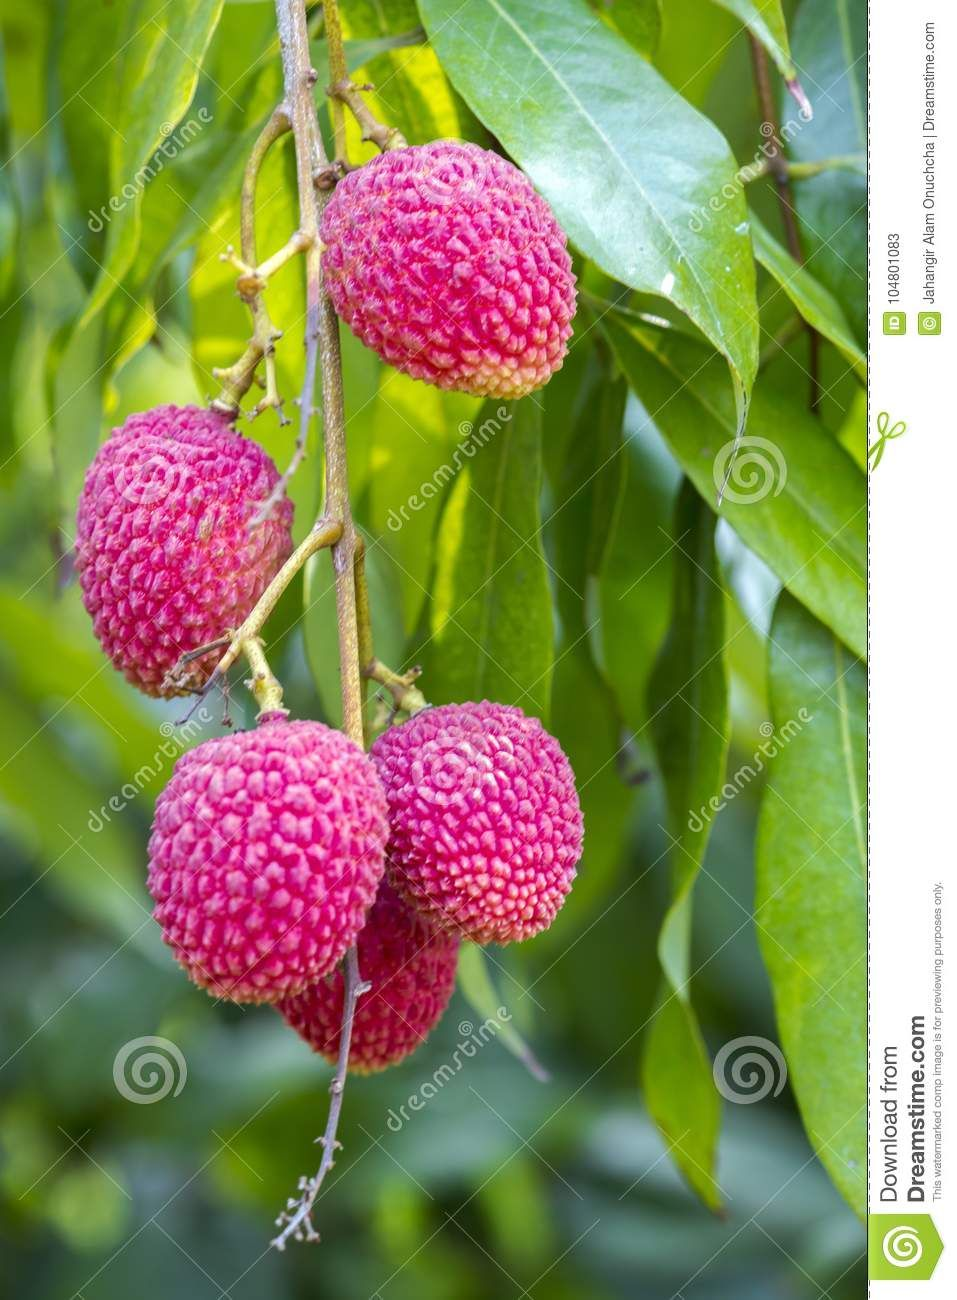 10pcs Fresh Lychee Litchi Seeds Rare Delicious Sweet Seasonal Fruit Tree Bonsai Factories And Mines Yard, Garden & Outdoor Living Home & Garden